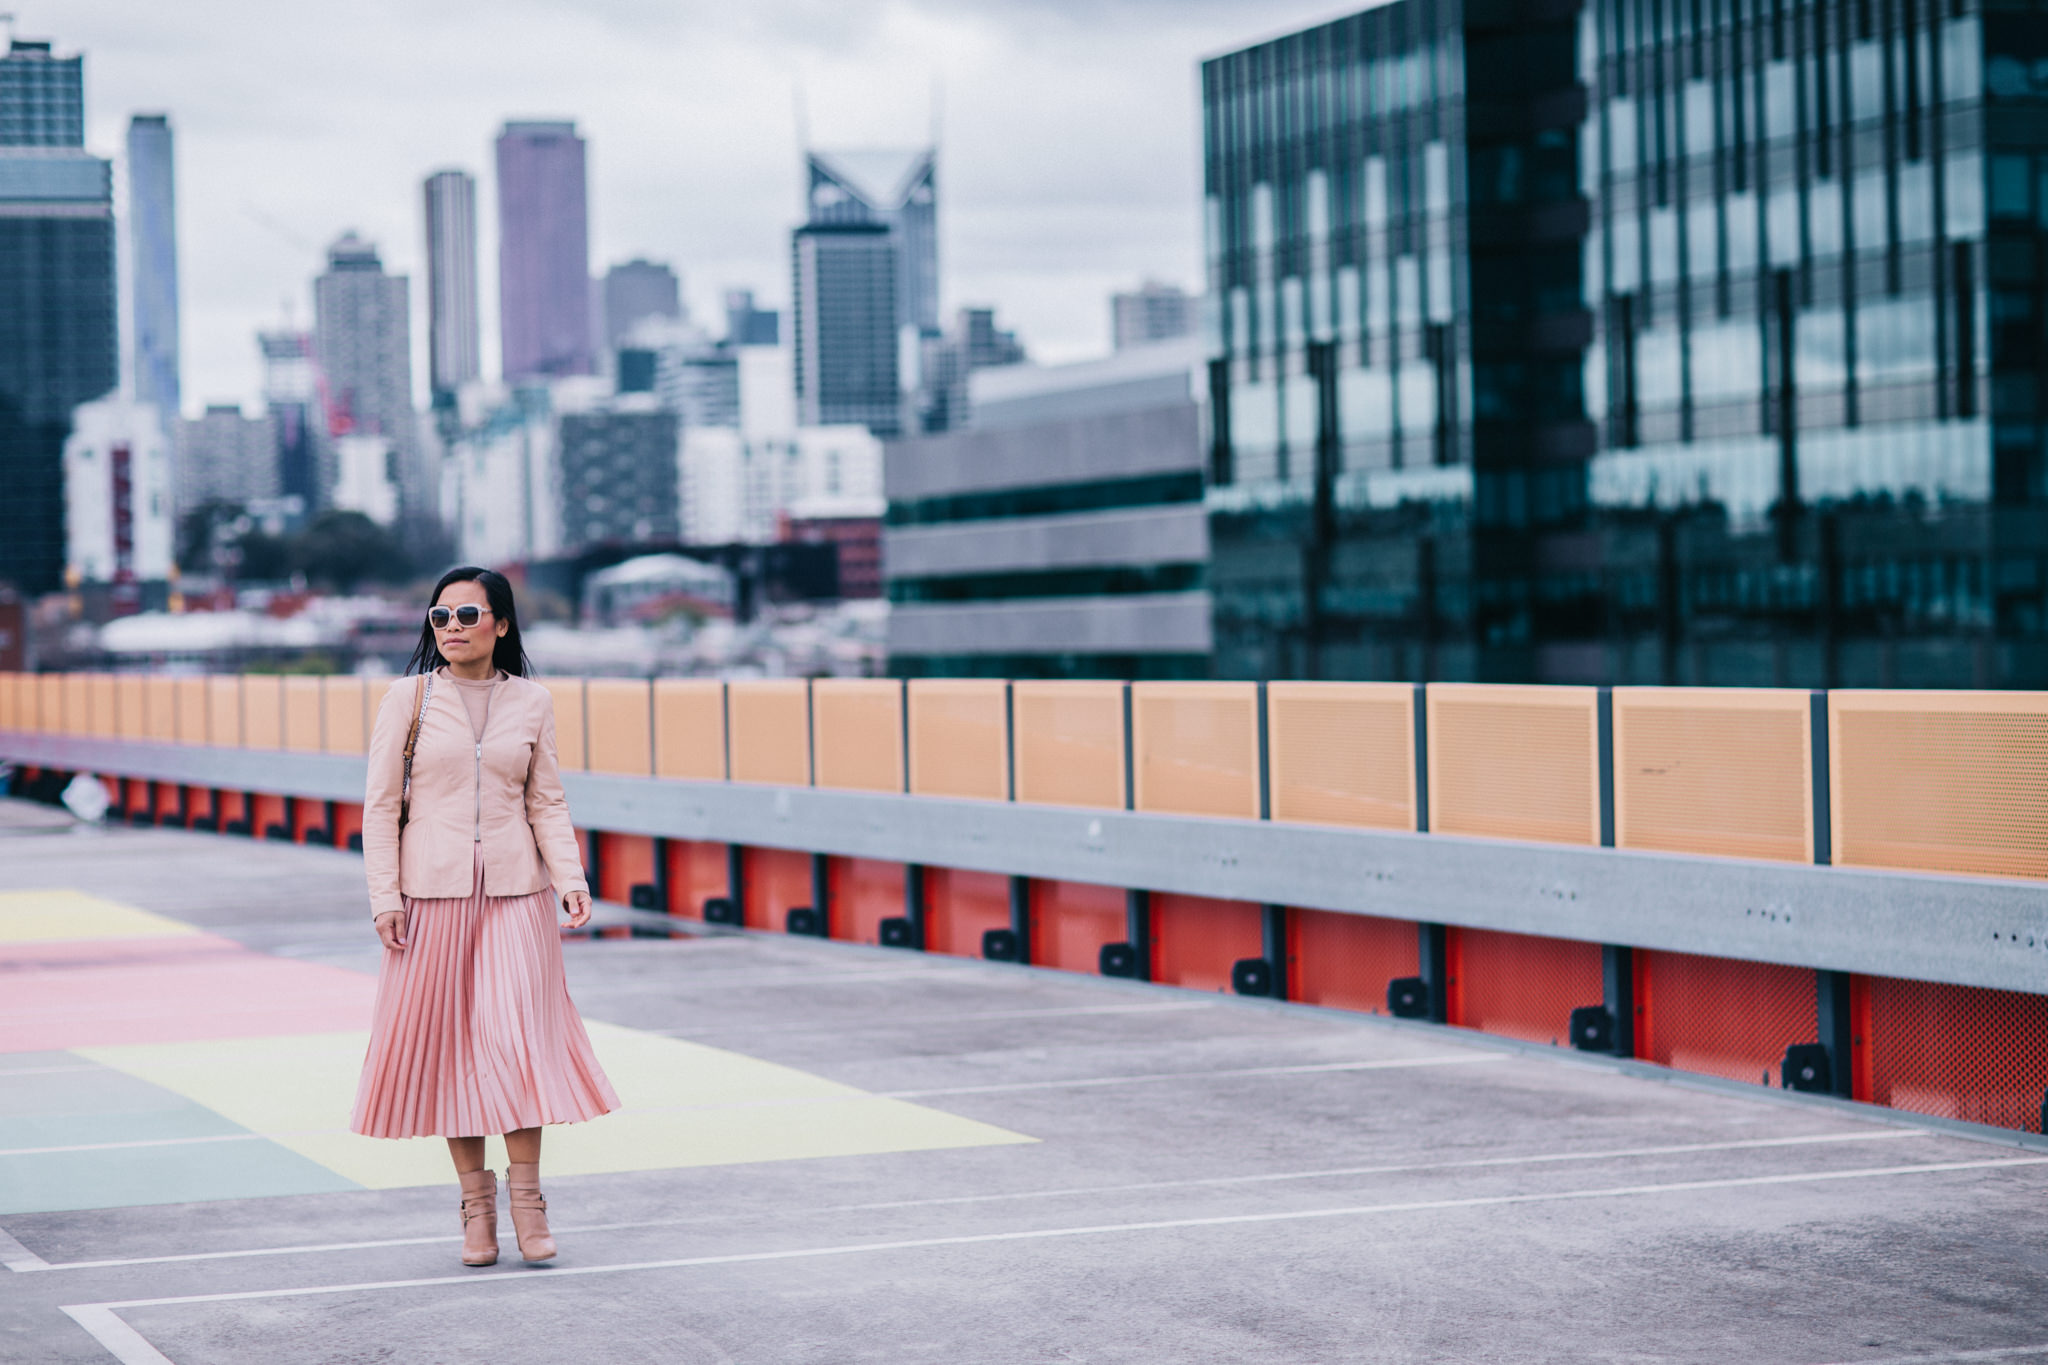 melbourne fashion shoot on rooftop - 2017 Fashion